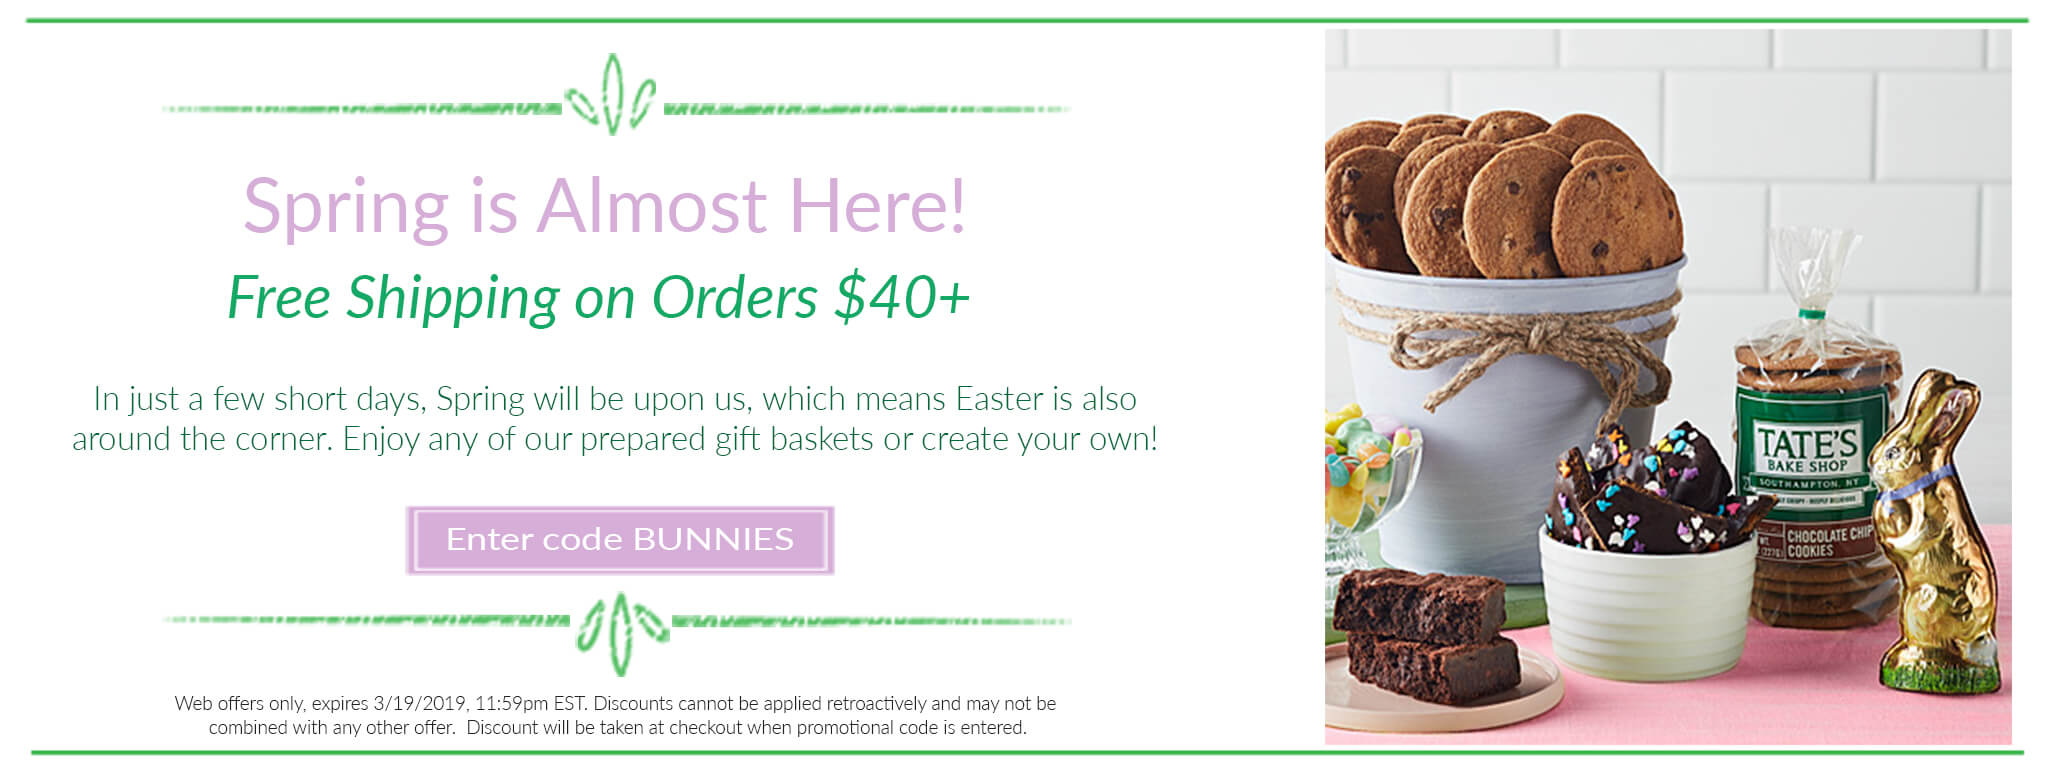 Spring and Easter Gifts